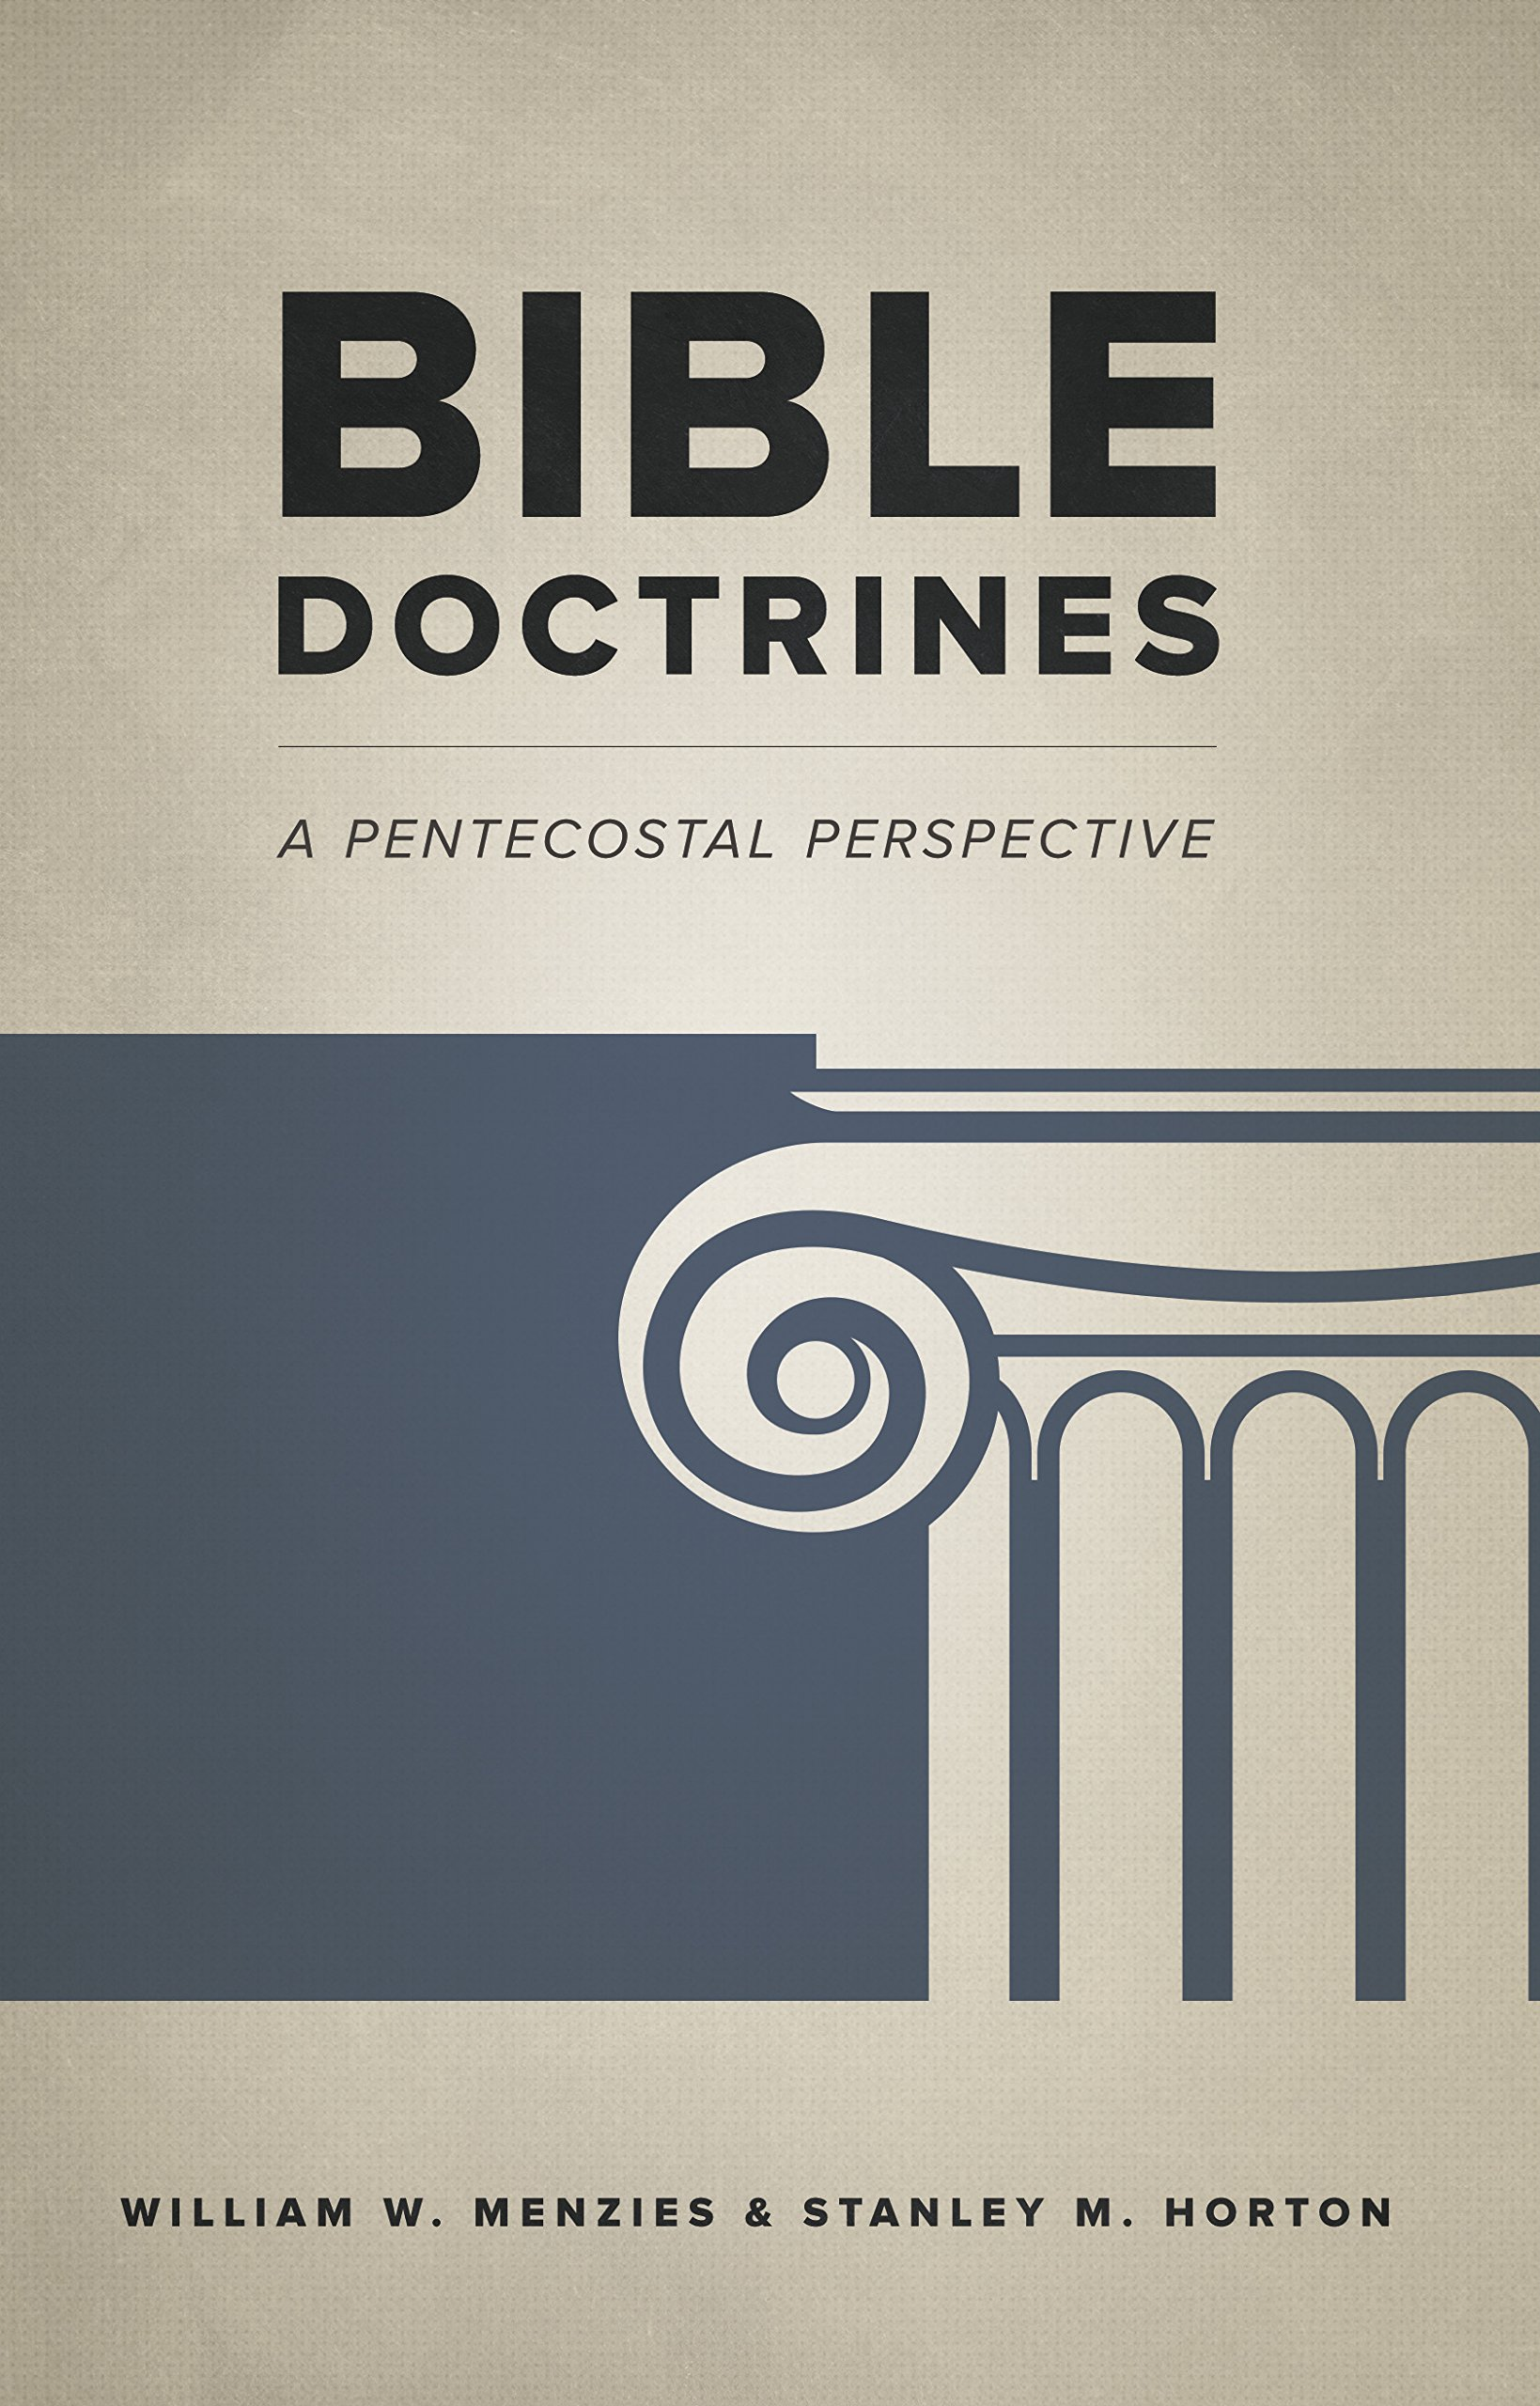 Bible Doctrines: A Pentecostal Perspective: William W